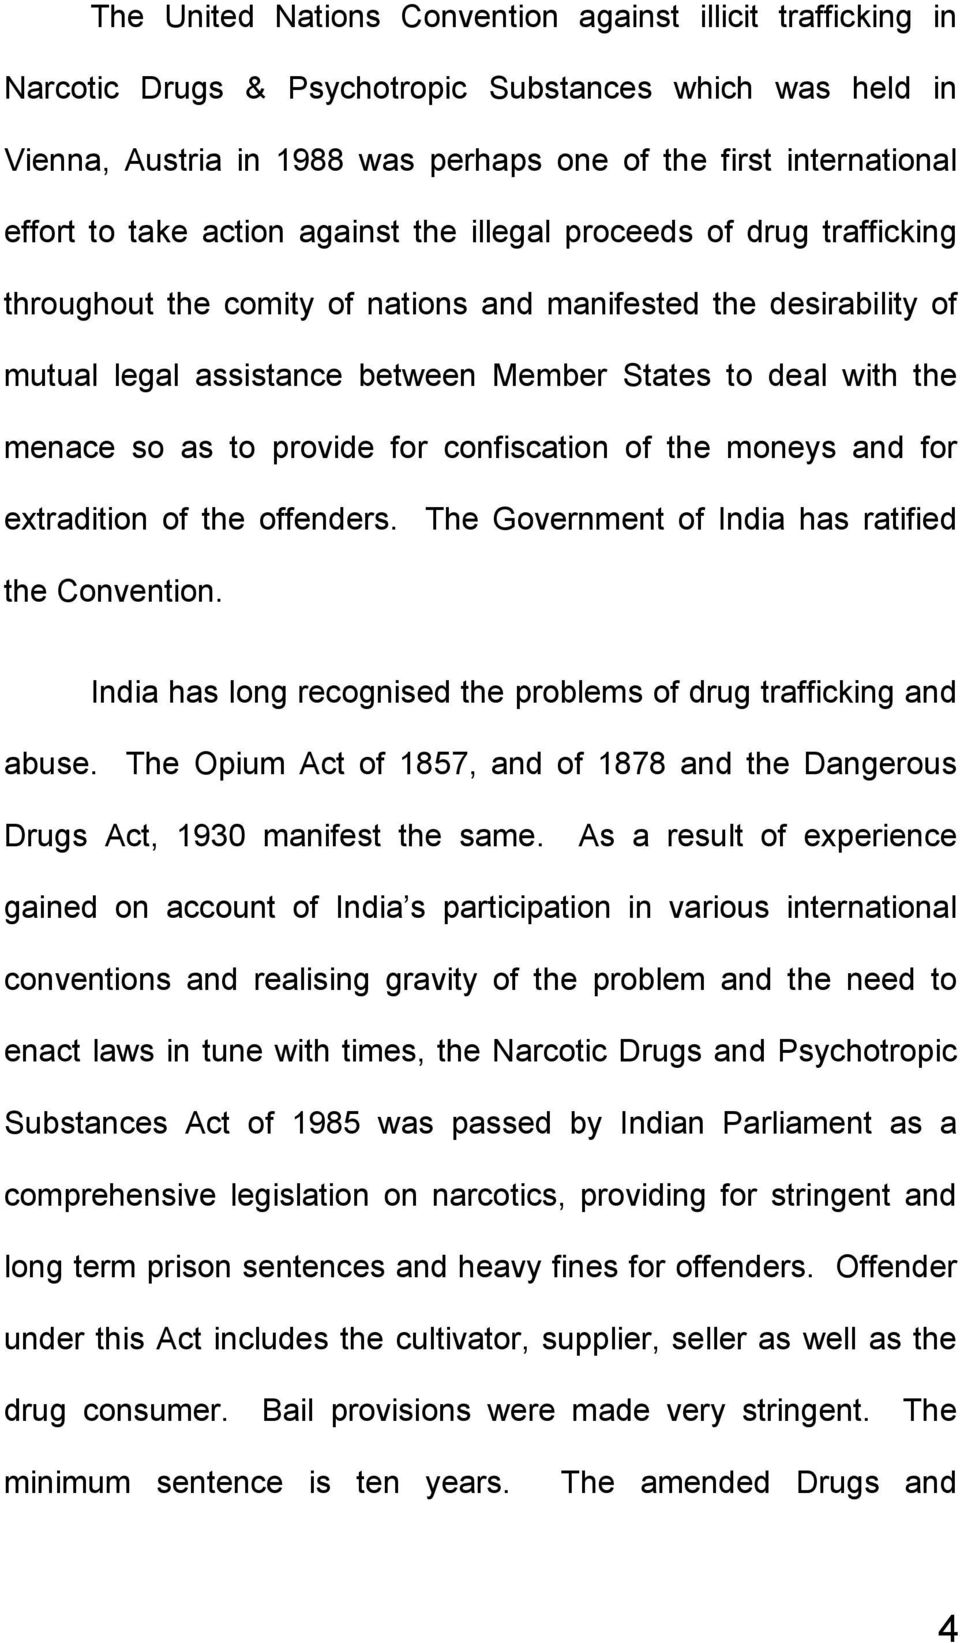 so as to provide for confiscation of the moneys and for extradition of the offenders. The Government of India has ratified the Convention.